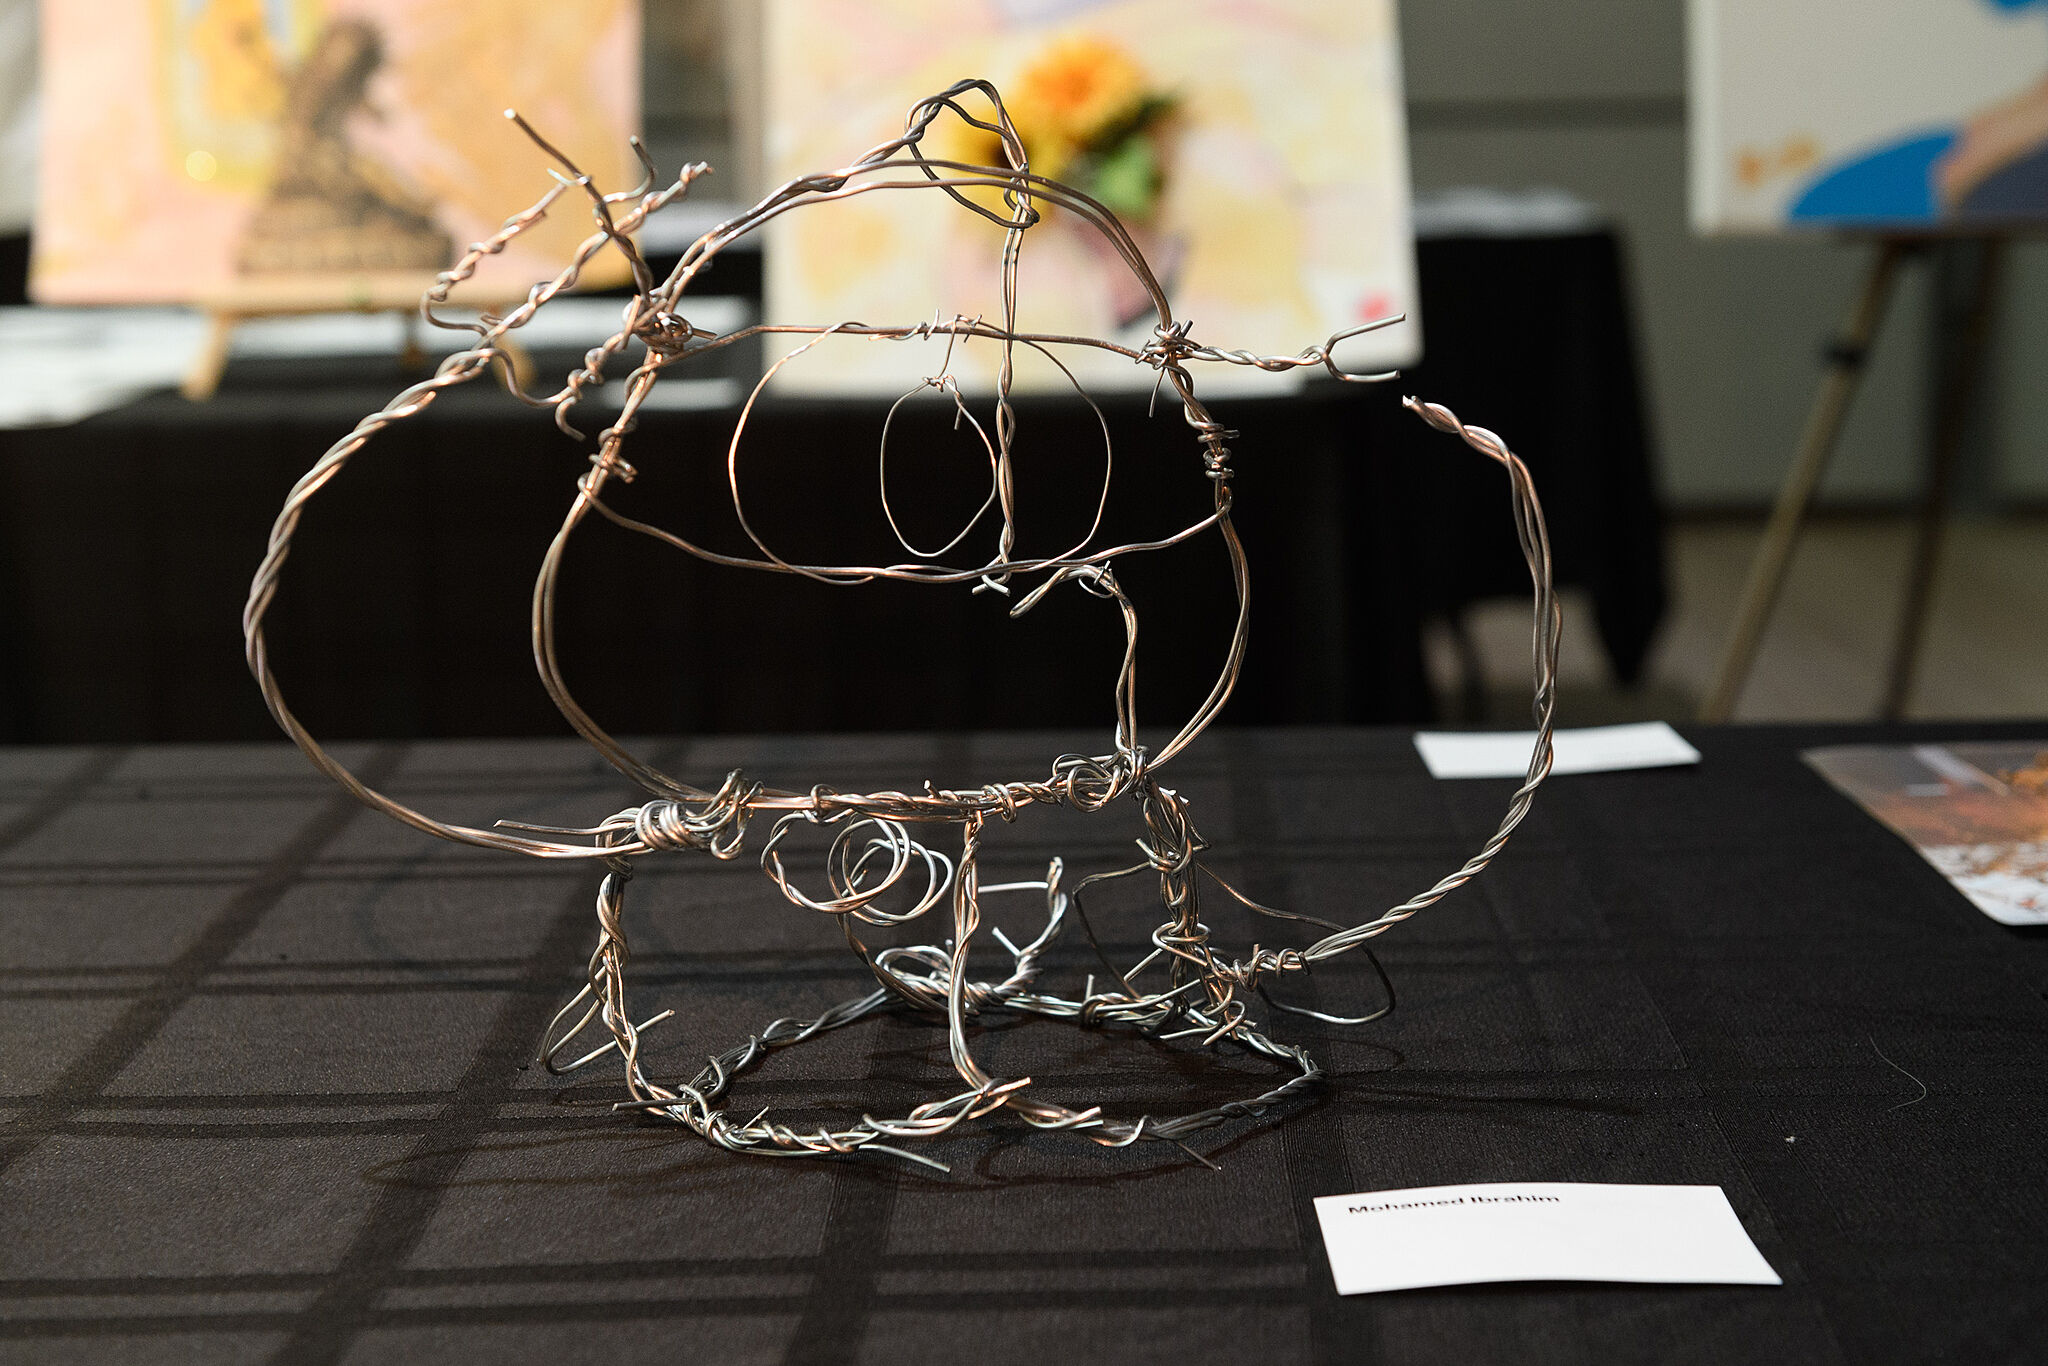 Abstract crown like shape made from wire.